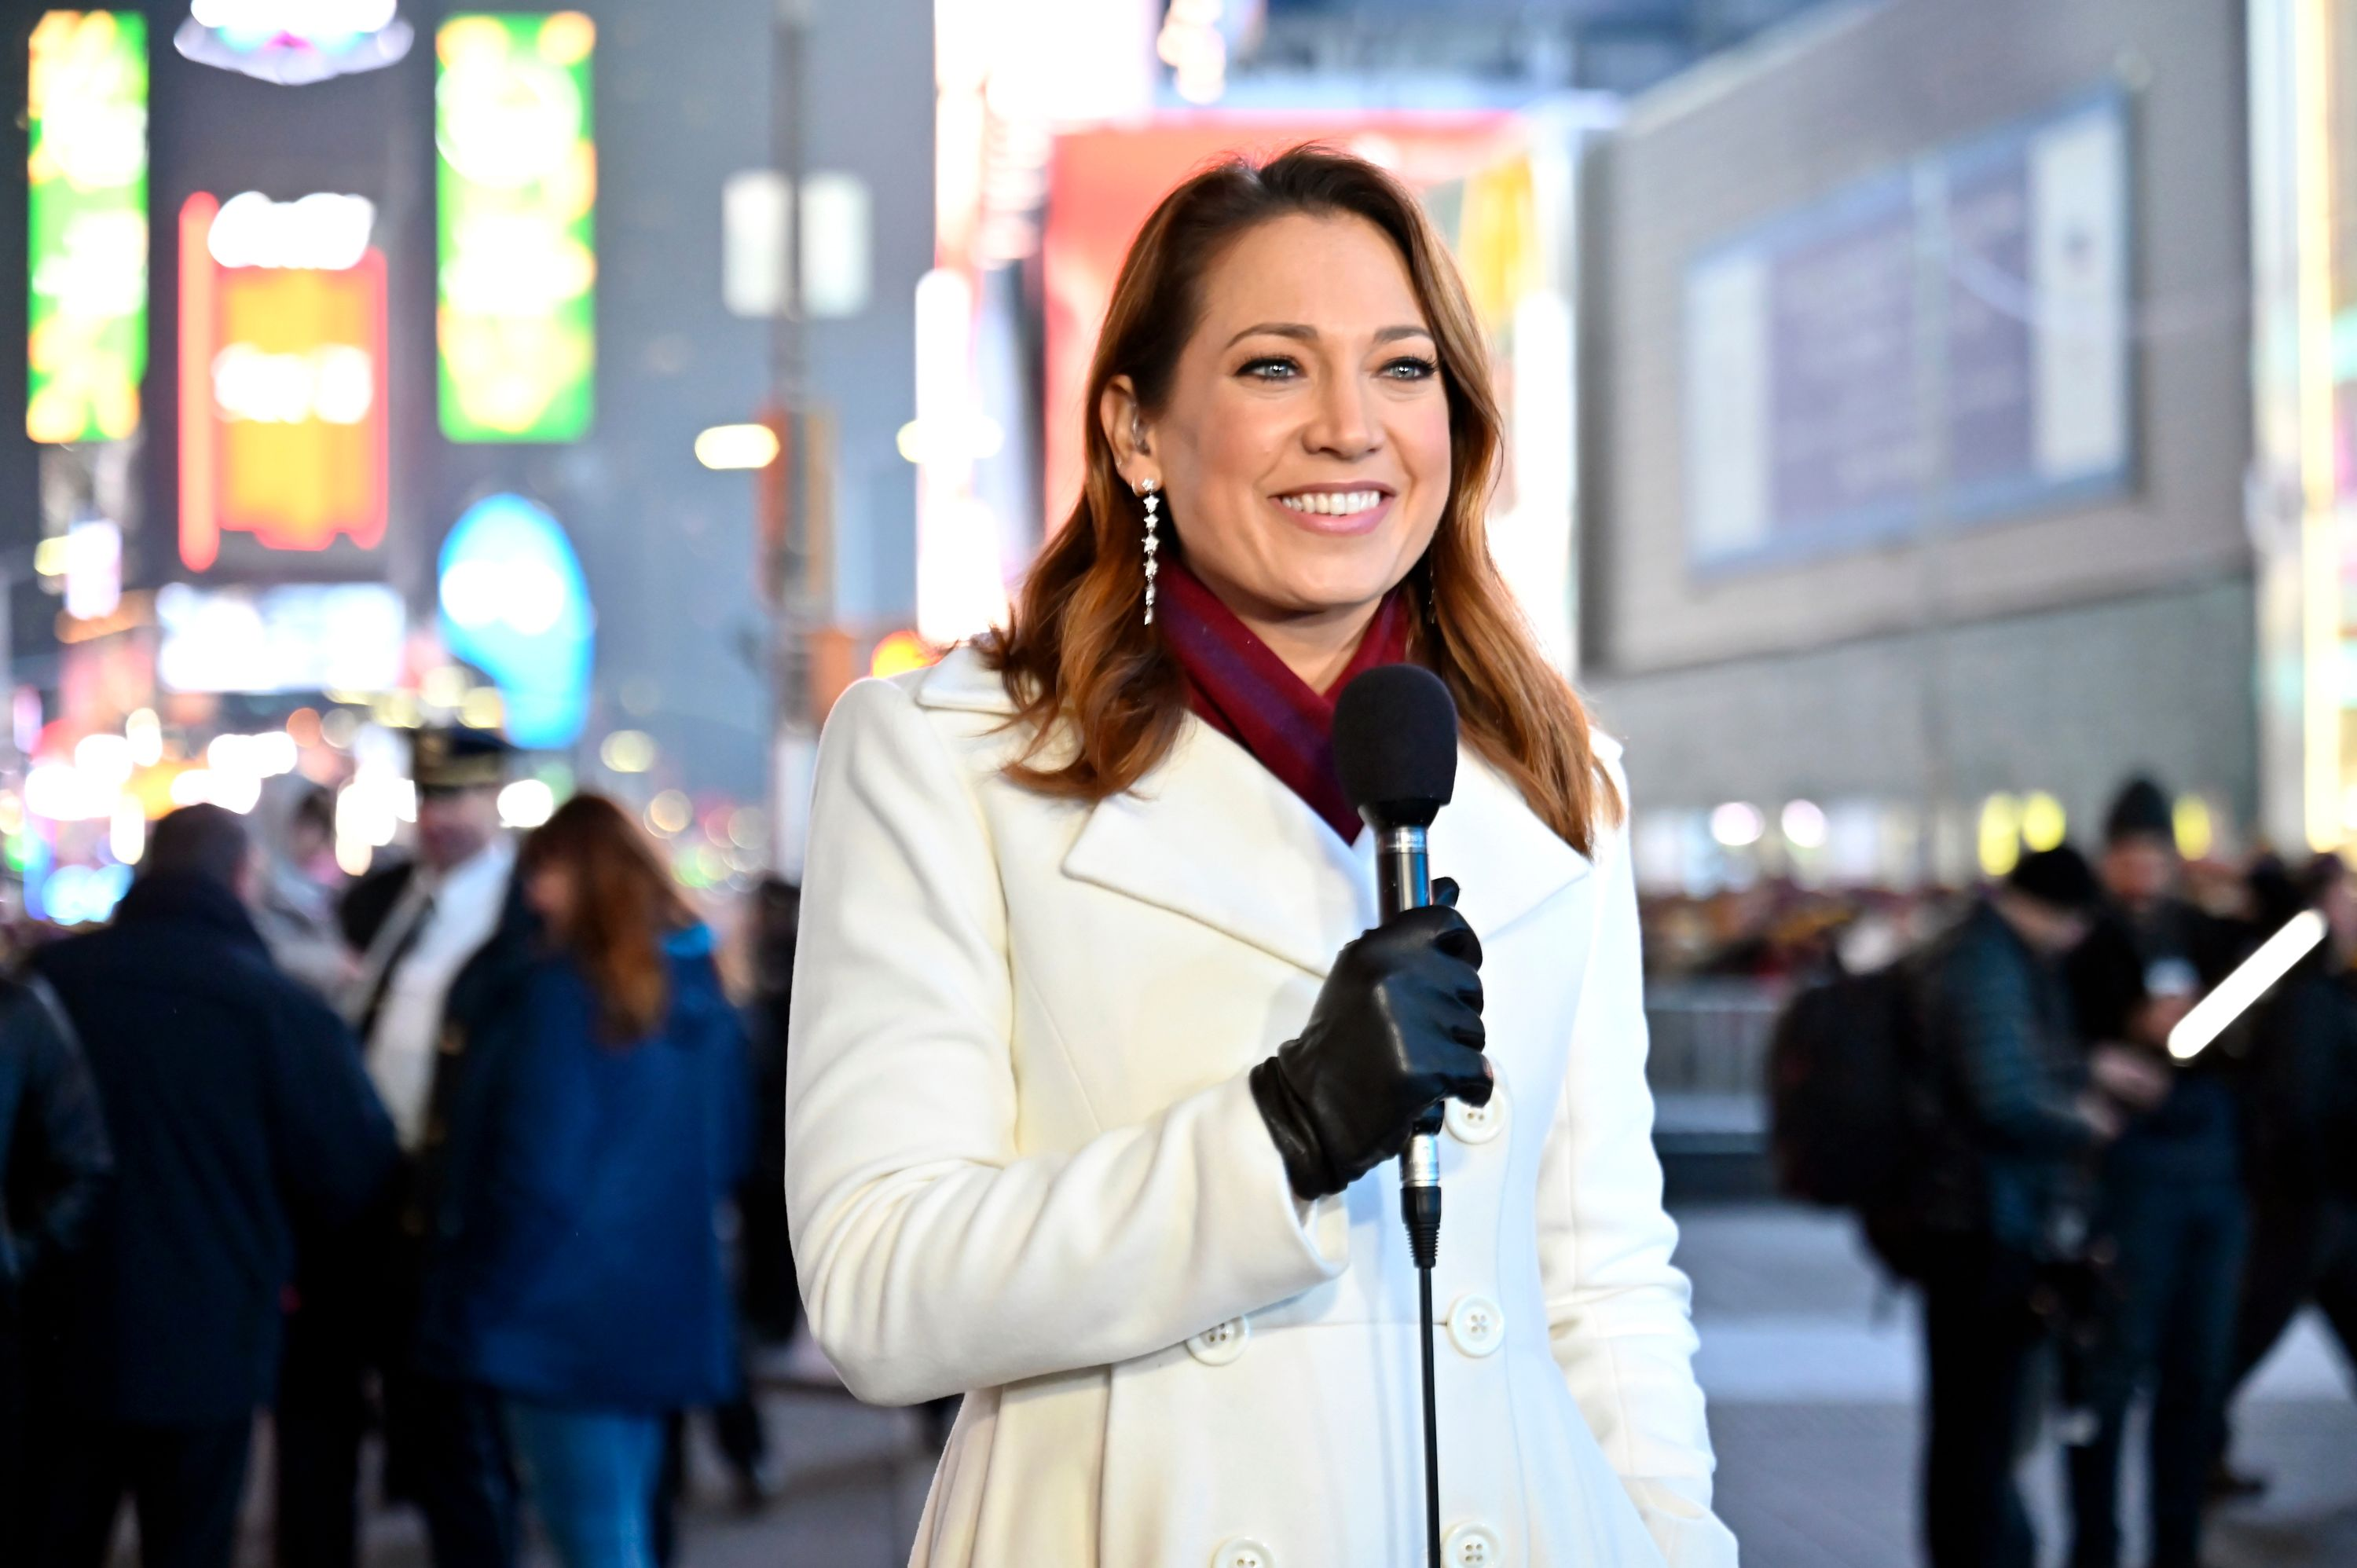 """Ginger Zee on ABC's """"Dick Clark's New Year's Rockin' Eve with Ryan Seacrest 2020."""" on December 31, 2019. 